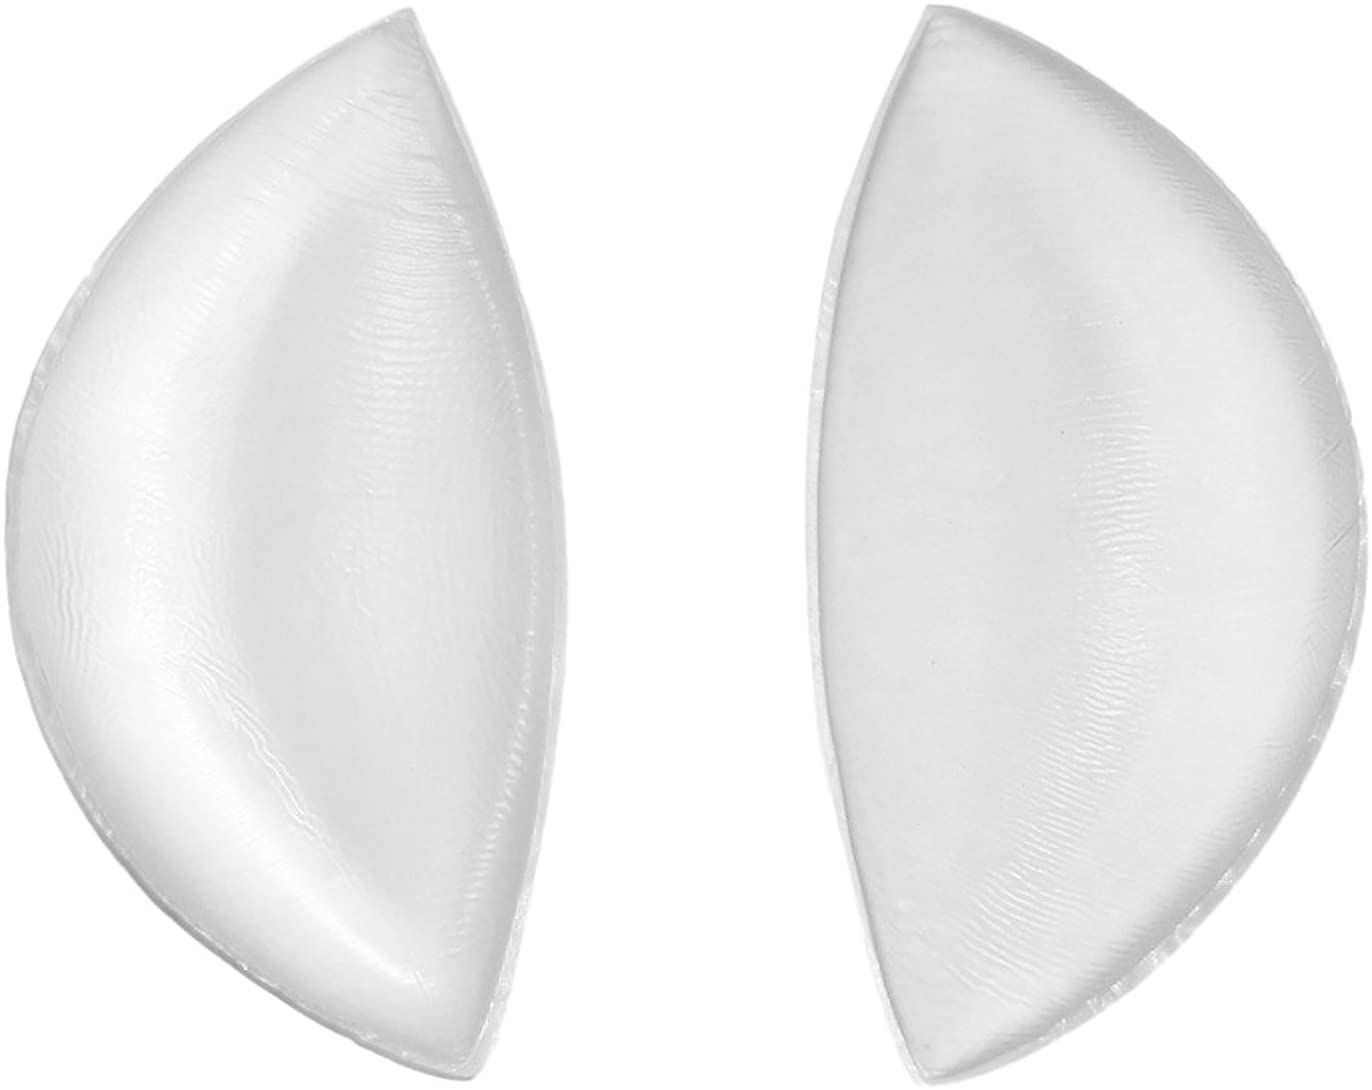 Sodacoda Silicone Gel Bra Inserts - Crescent 180g/Pair - Push-Up for Swimsuit, Bikini and Bras